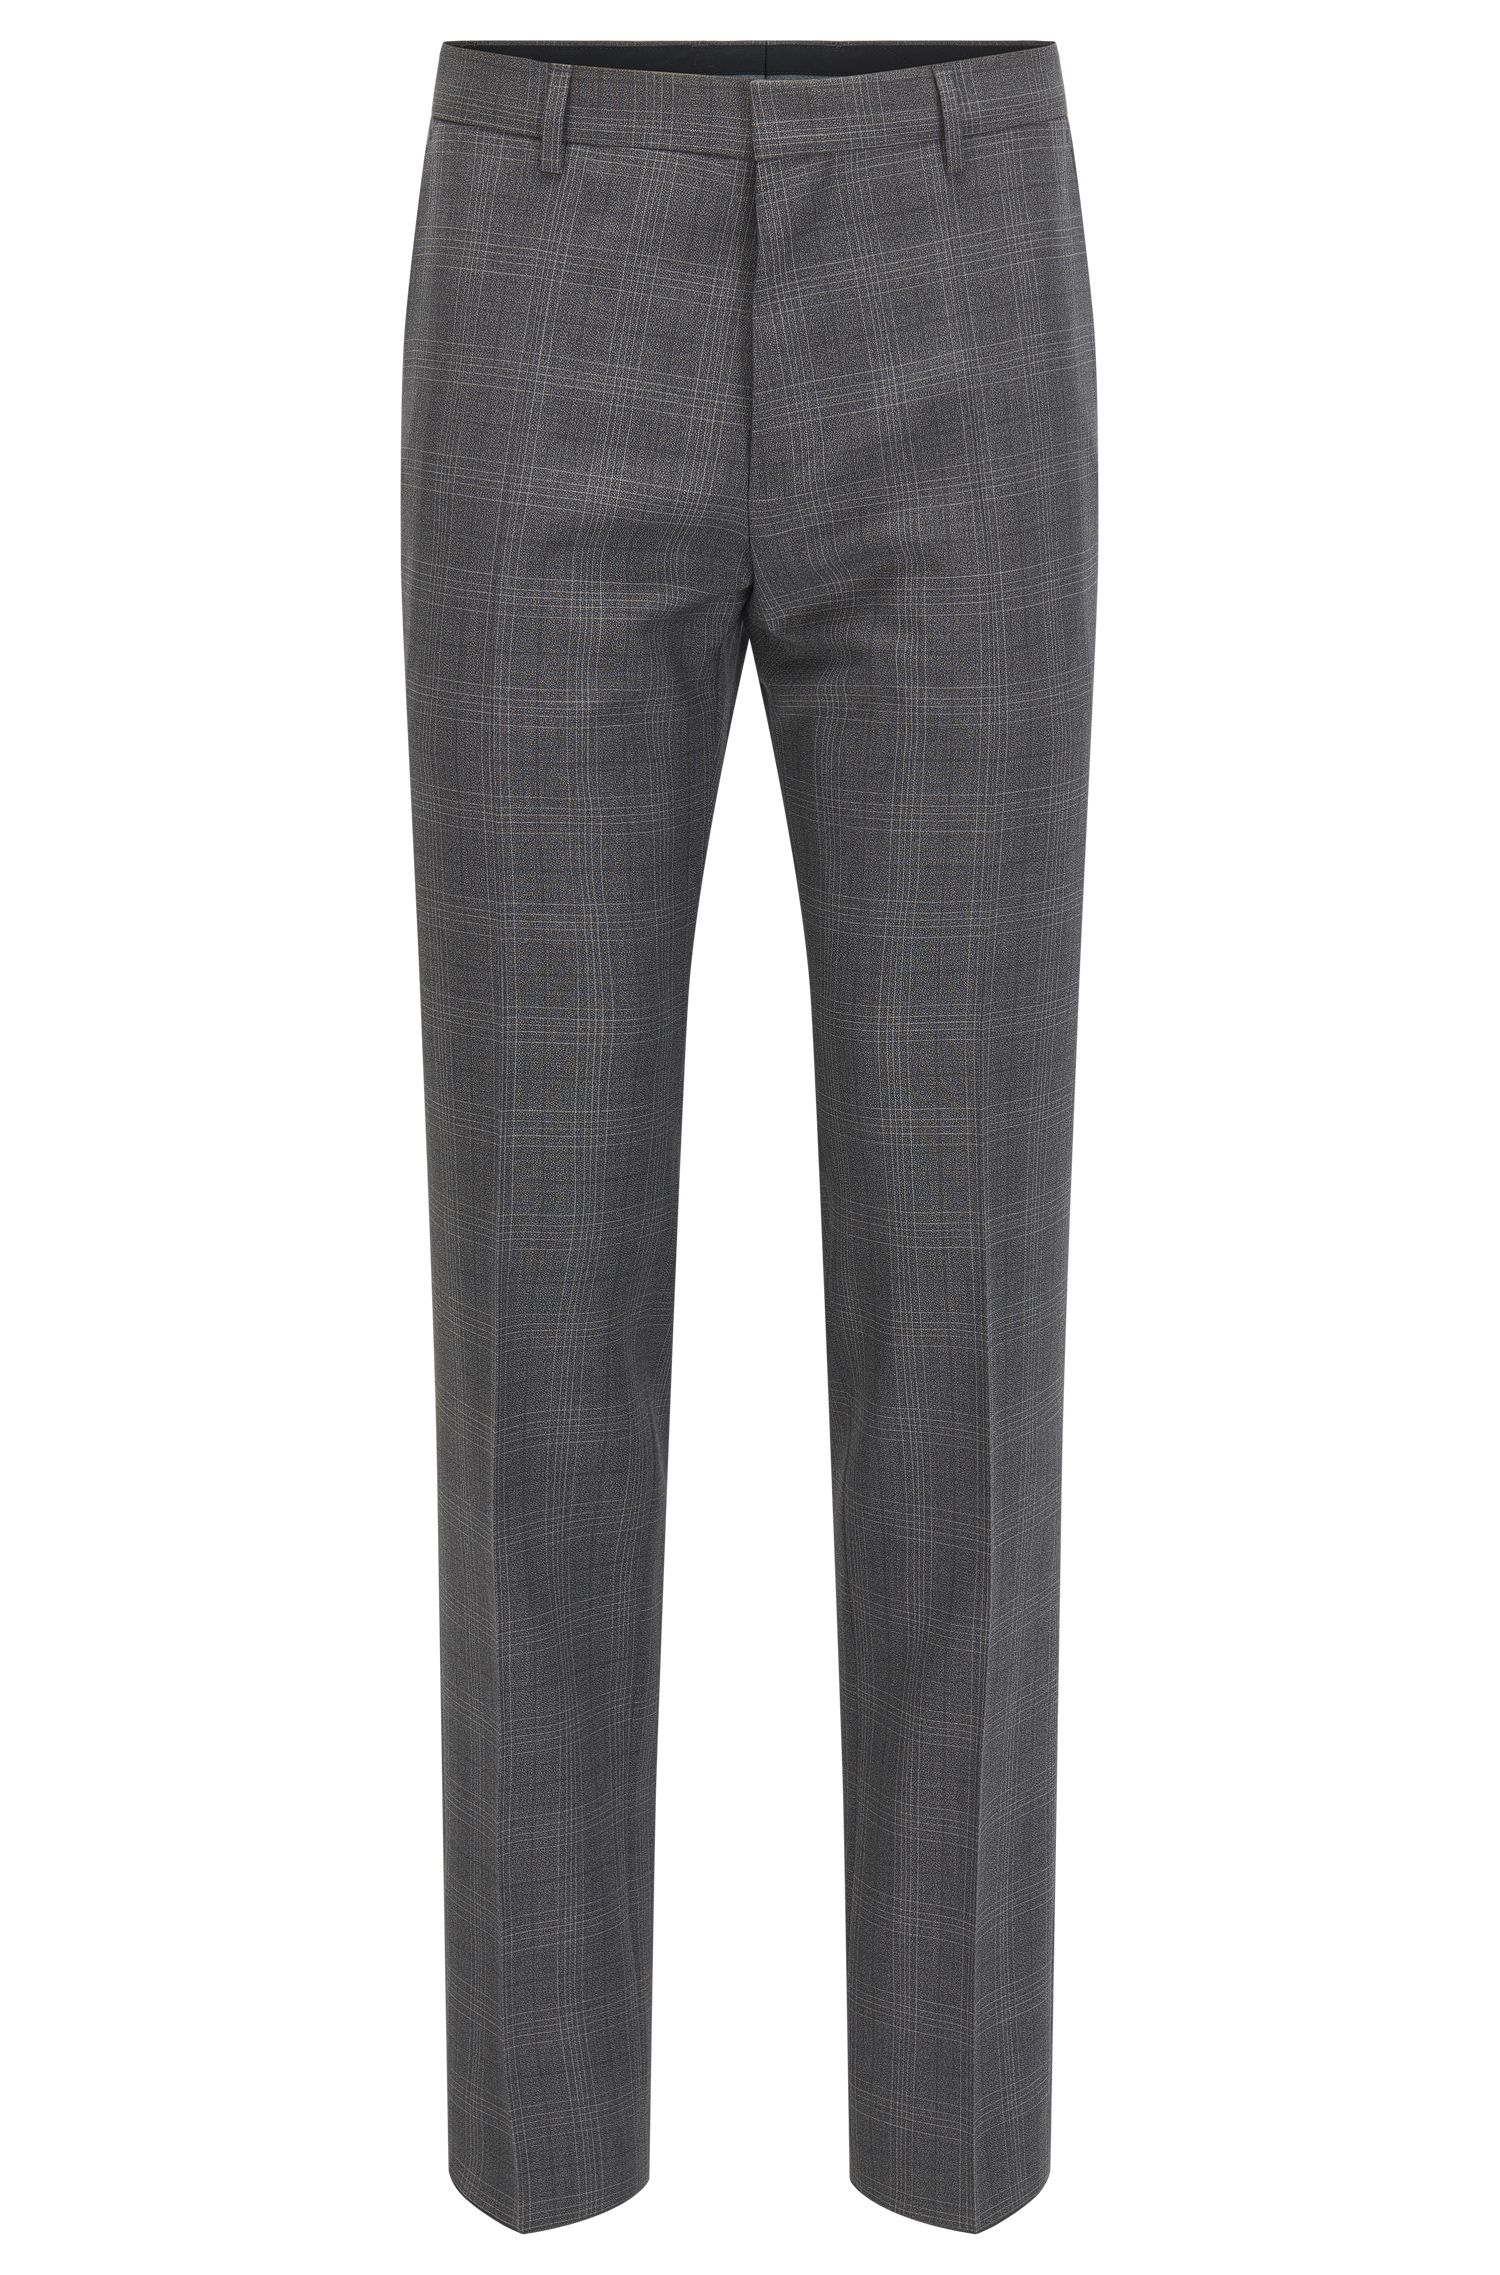 'Genesis' | Slim Fit, Glen Check Virgin Wool Dress Pants